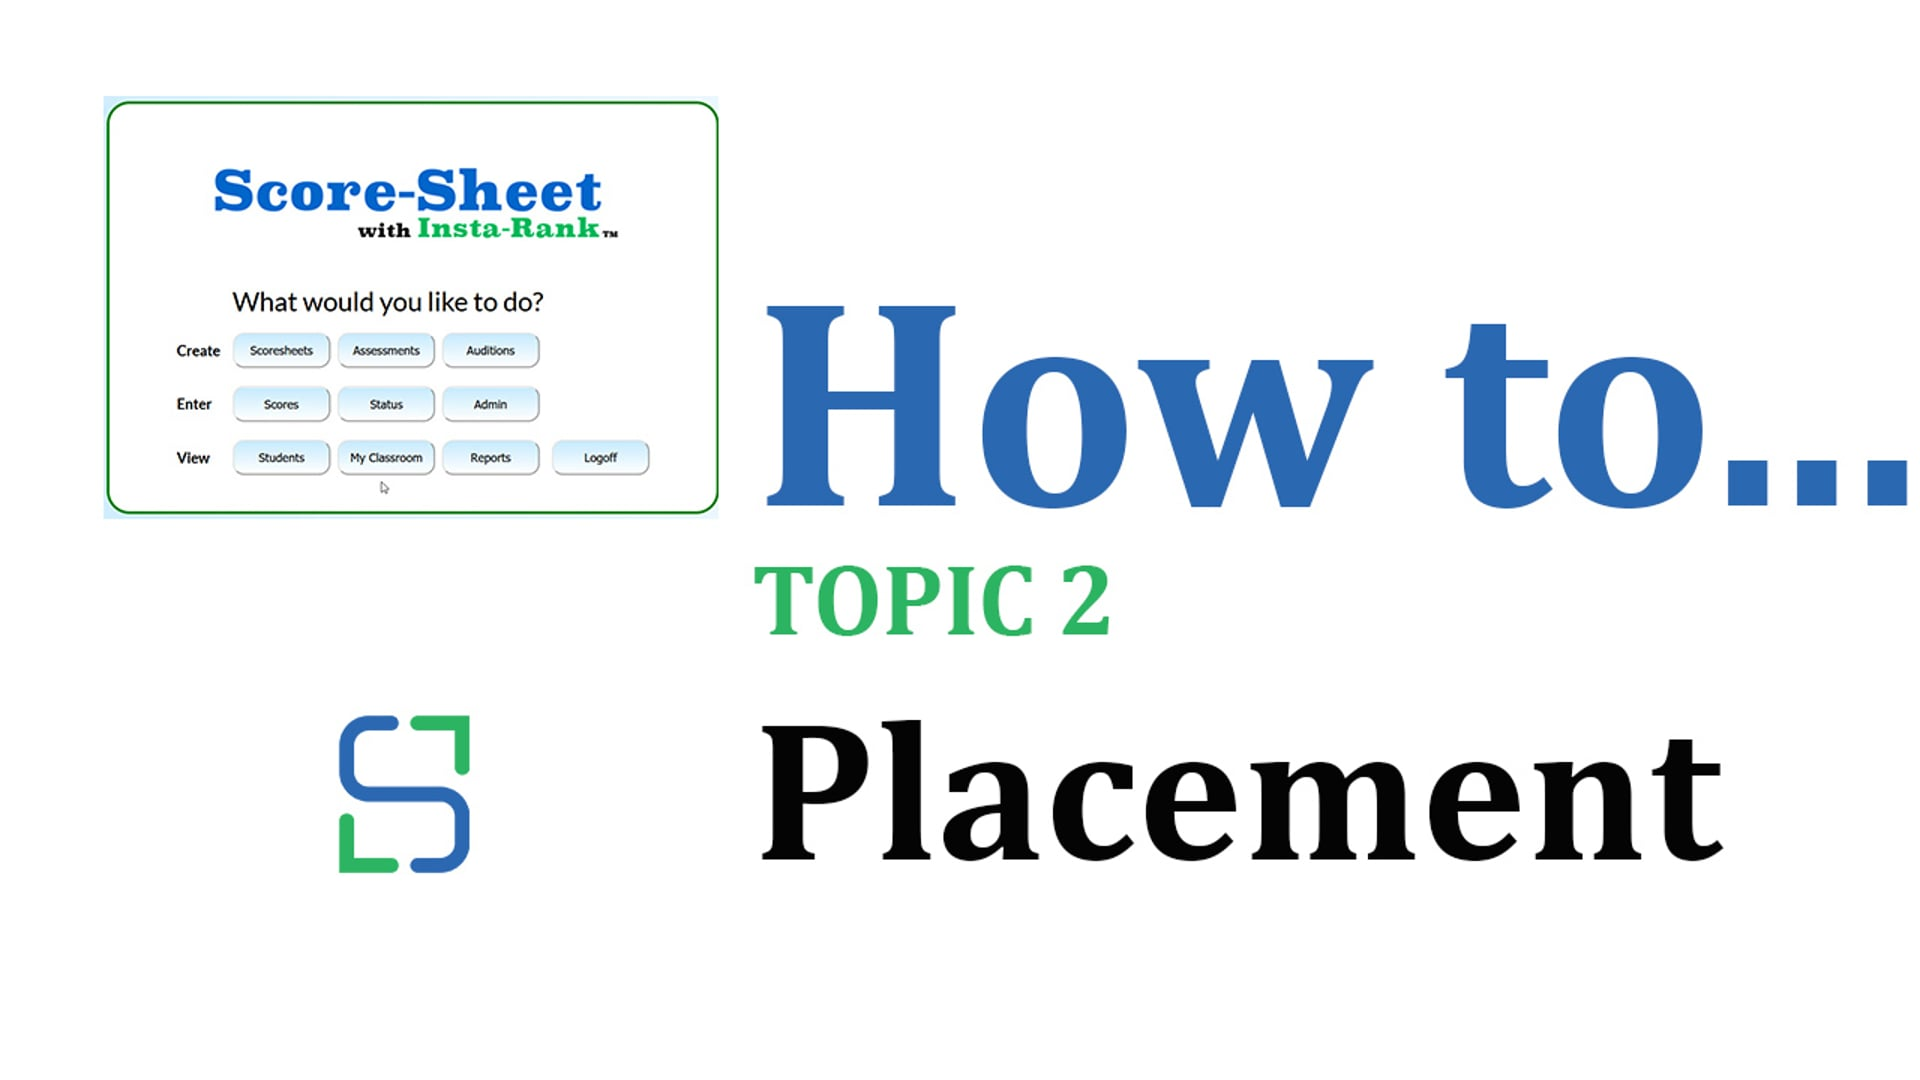 13 - PLACEMENT